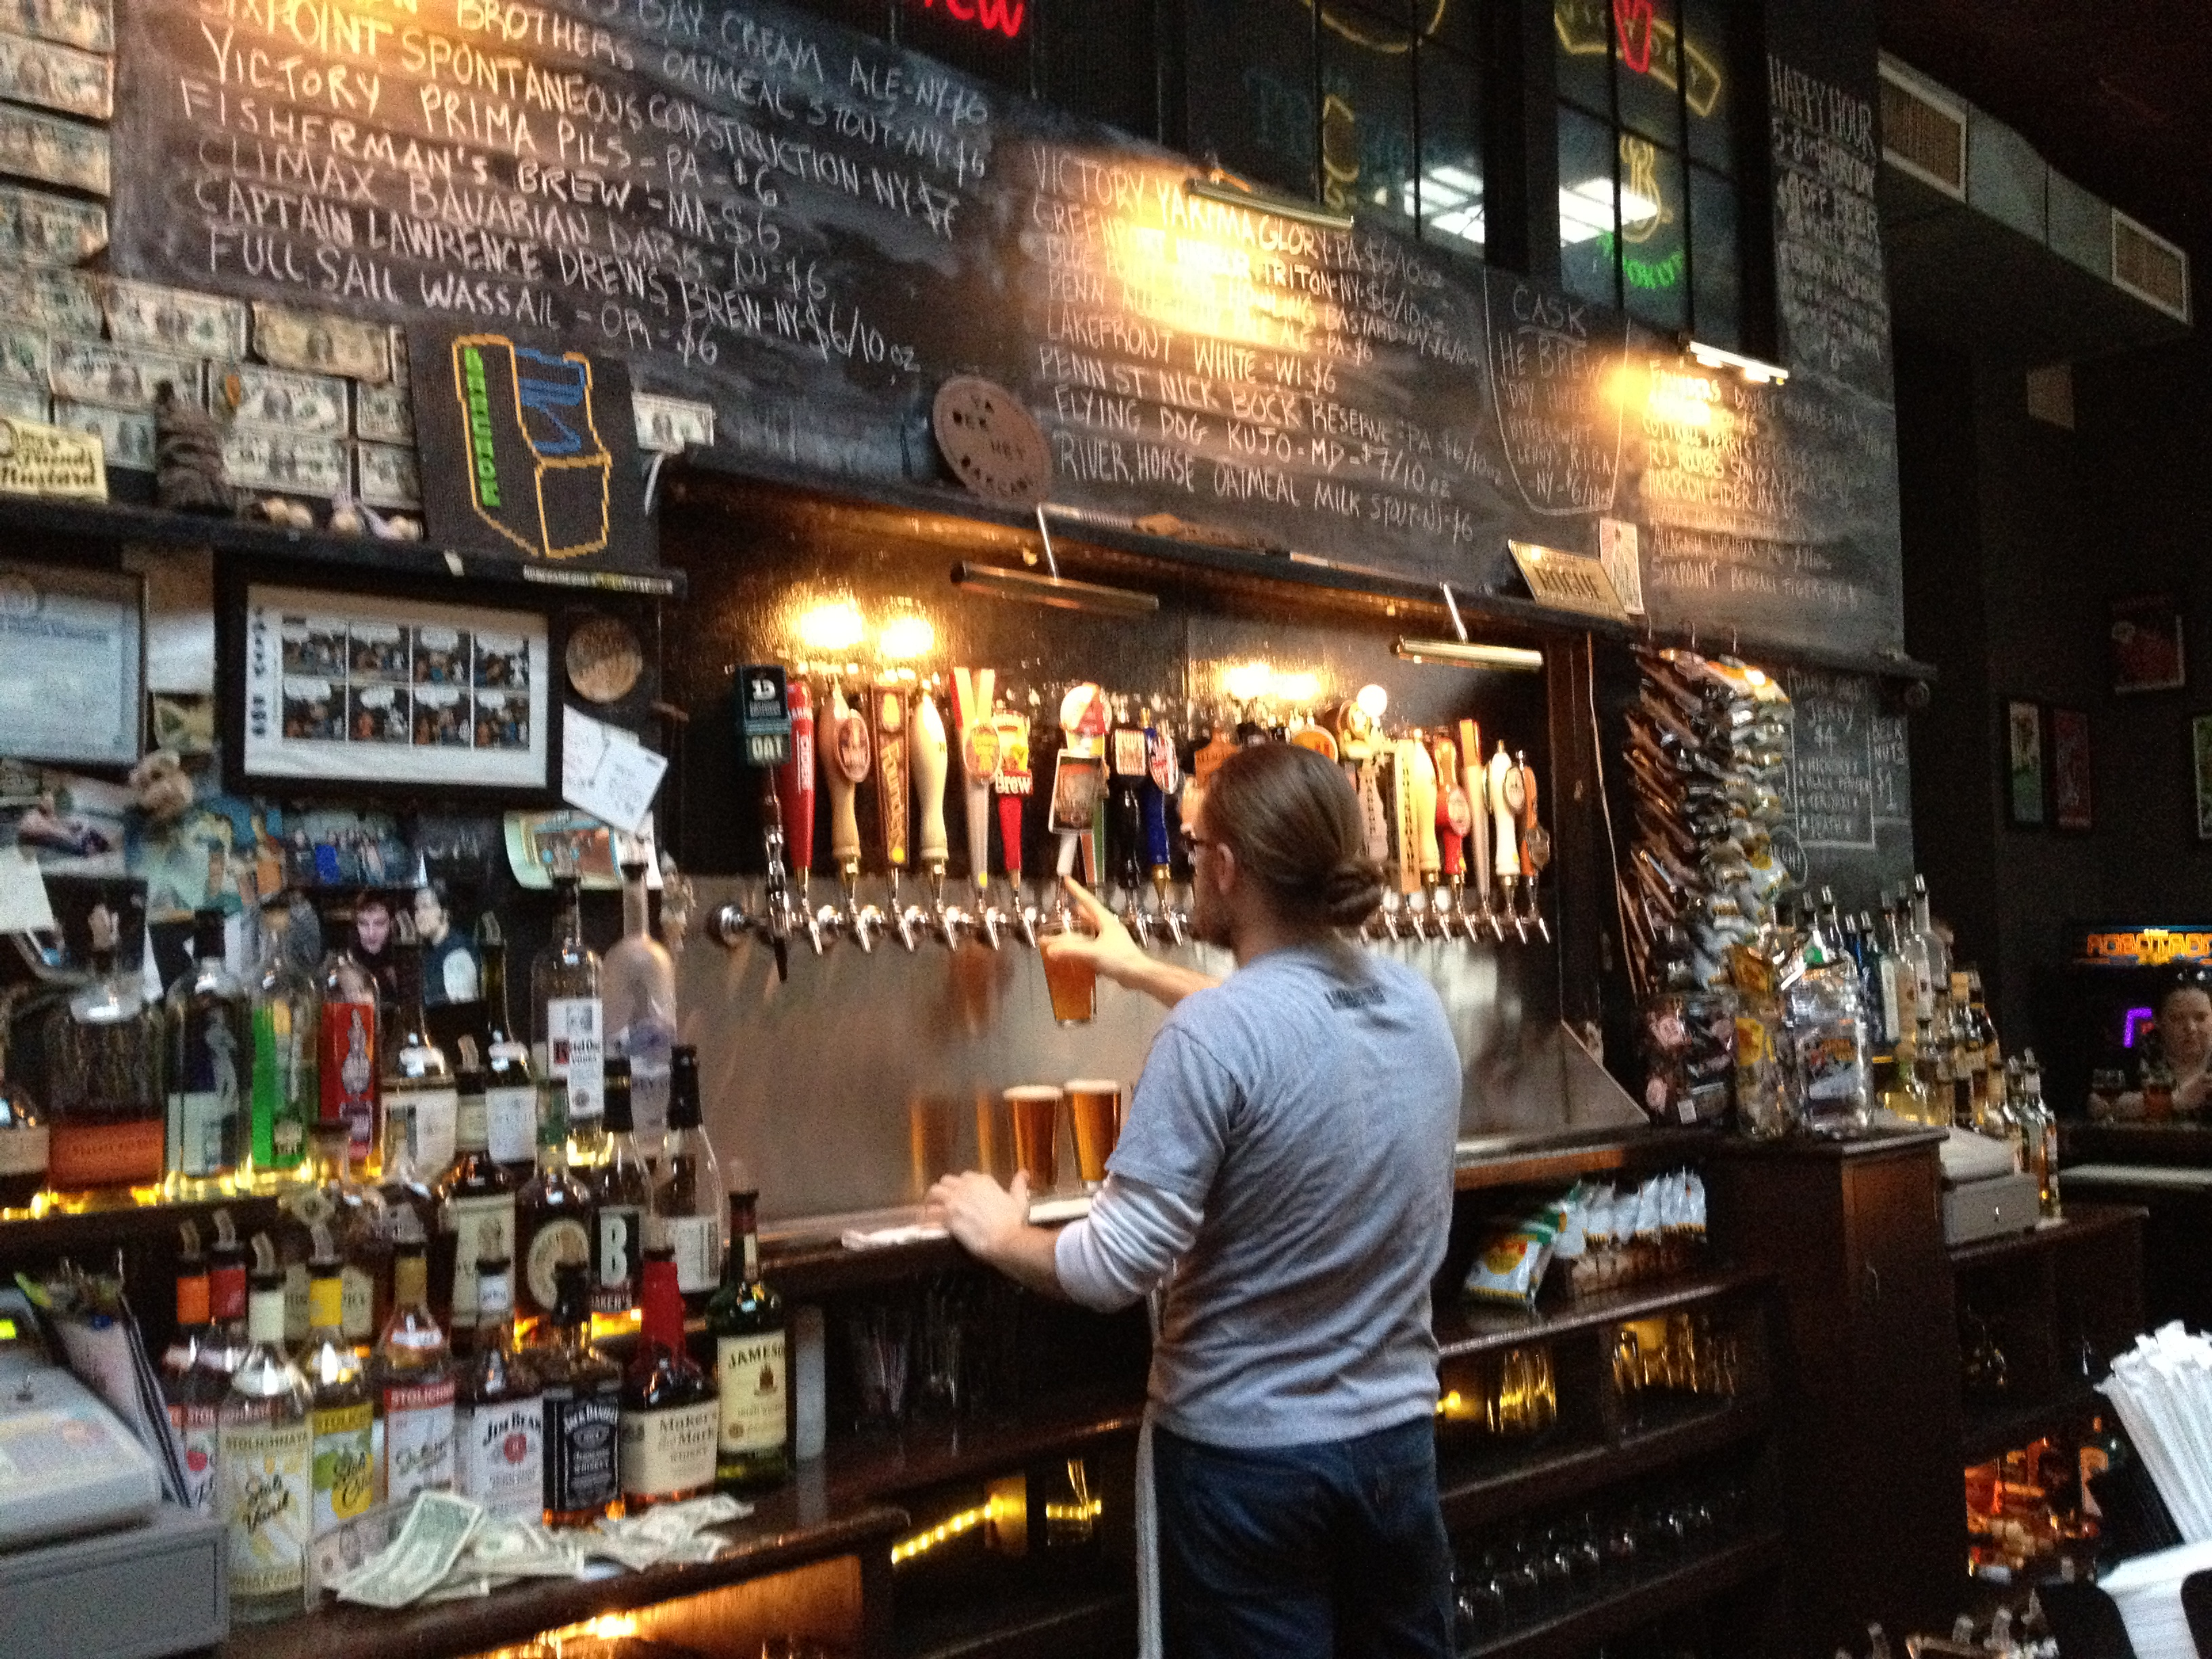 Brooklyn Heights Promenade New York City, Best Craft Beer Breweries in America for National Beer Day | SPY